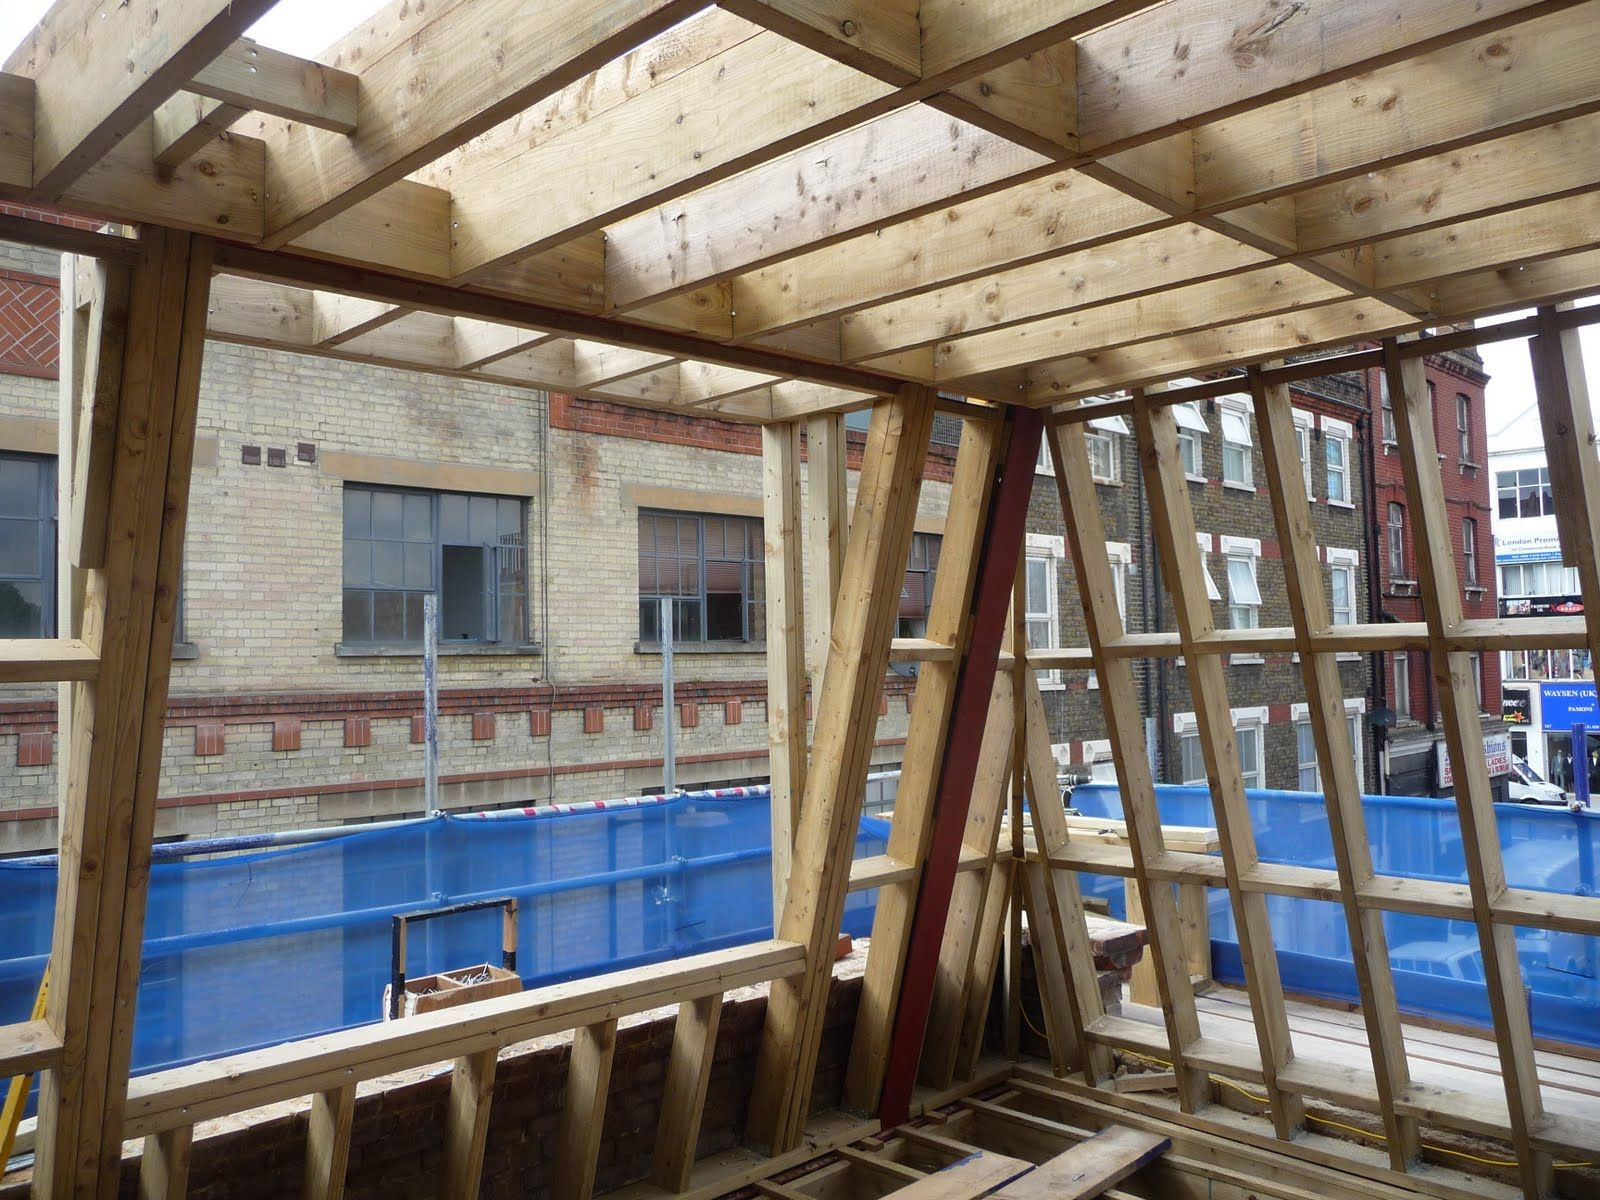 Mansard Roof How To Build And Its Advantages Disadvantages Mansard Roof Roof Design Roof Construction